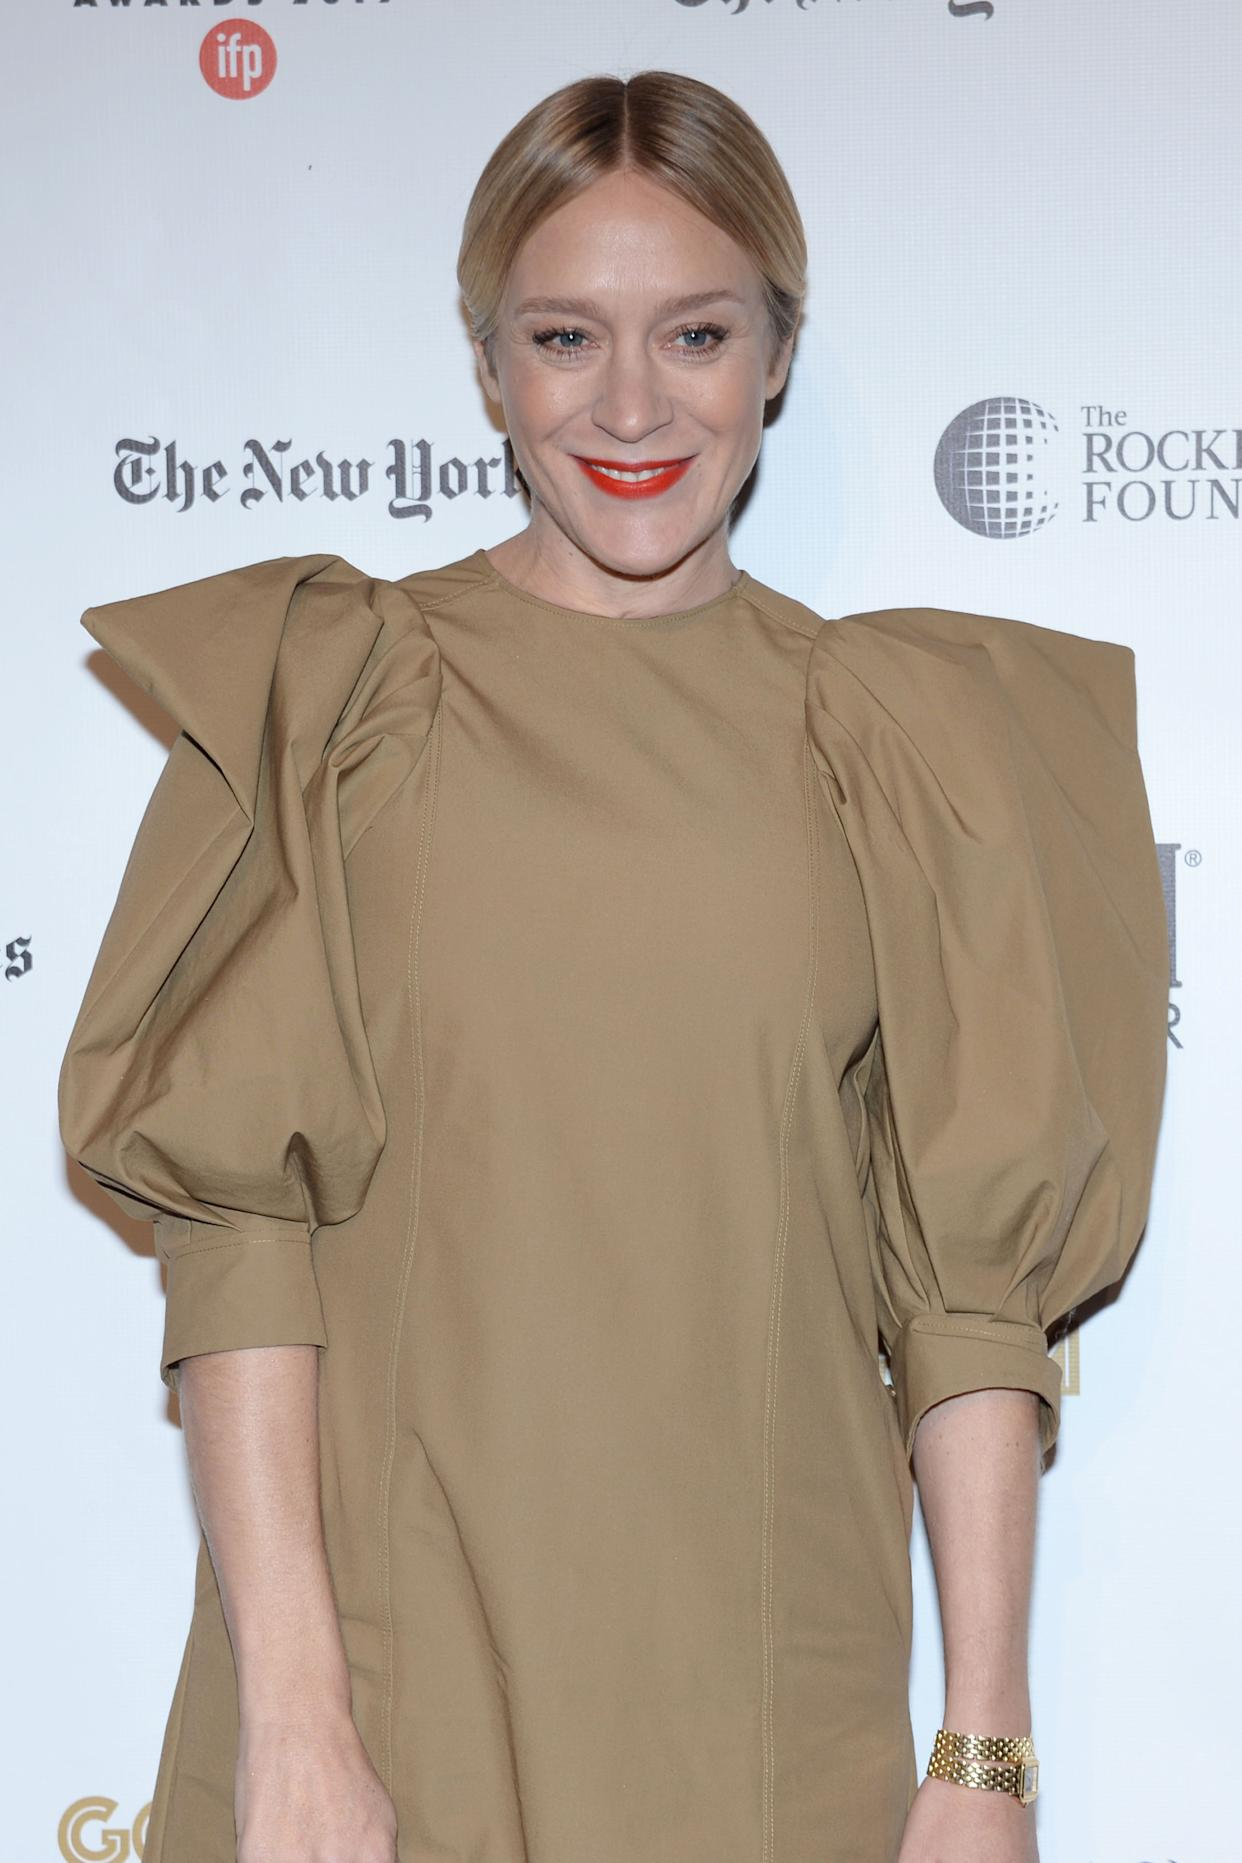 NEW YORK, NEW YORK - DECEMBER 2: Chloe Sevigny attends 2019 IFP Gotham Awards on December 2, 2019 at Cipriani Wall Street in New York City. (Photo by Paul Bruinooge/Patrick McMullan via Getty Images)